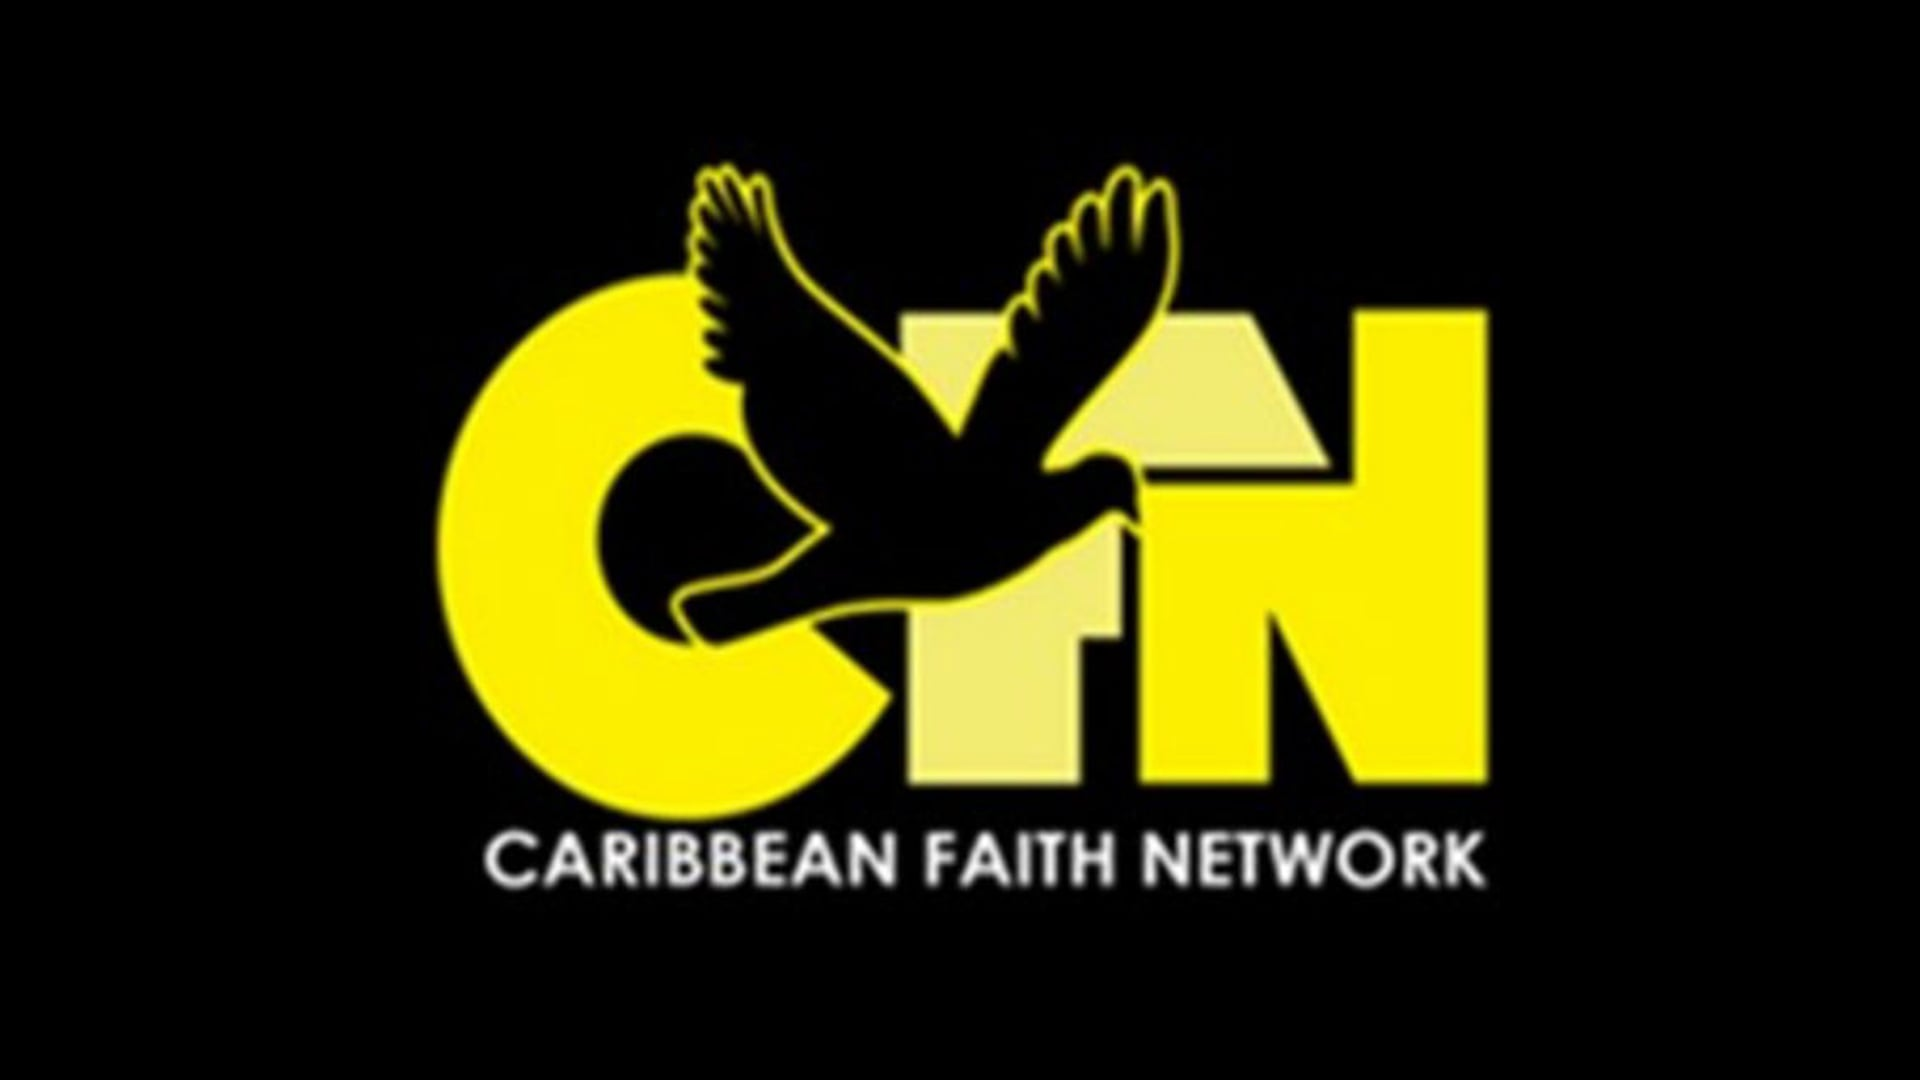 Caribbean Faith Network